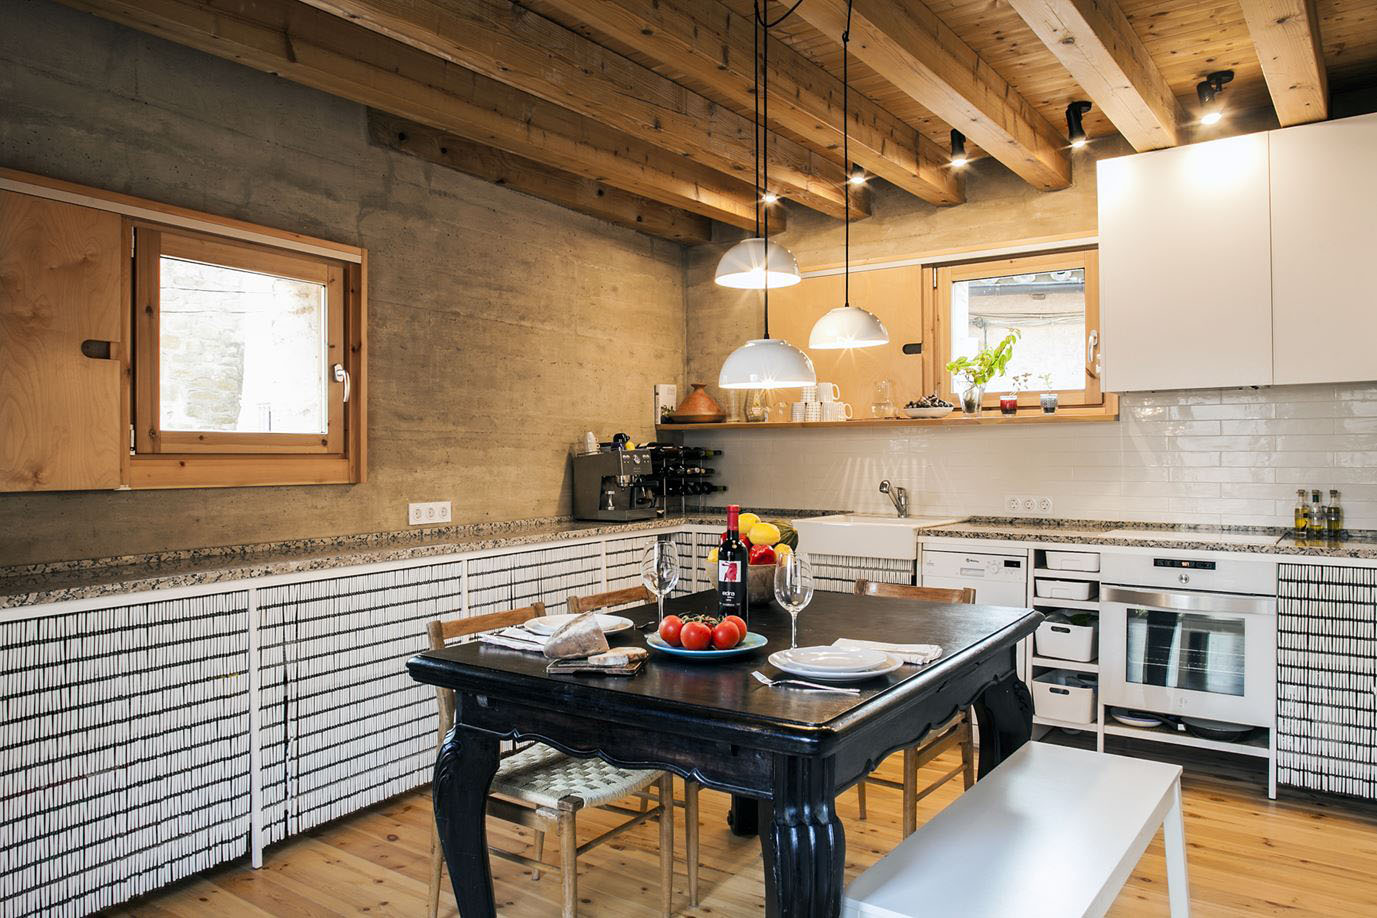 Kitchen with Pine Wooden Planks Ceiling Beams